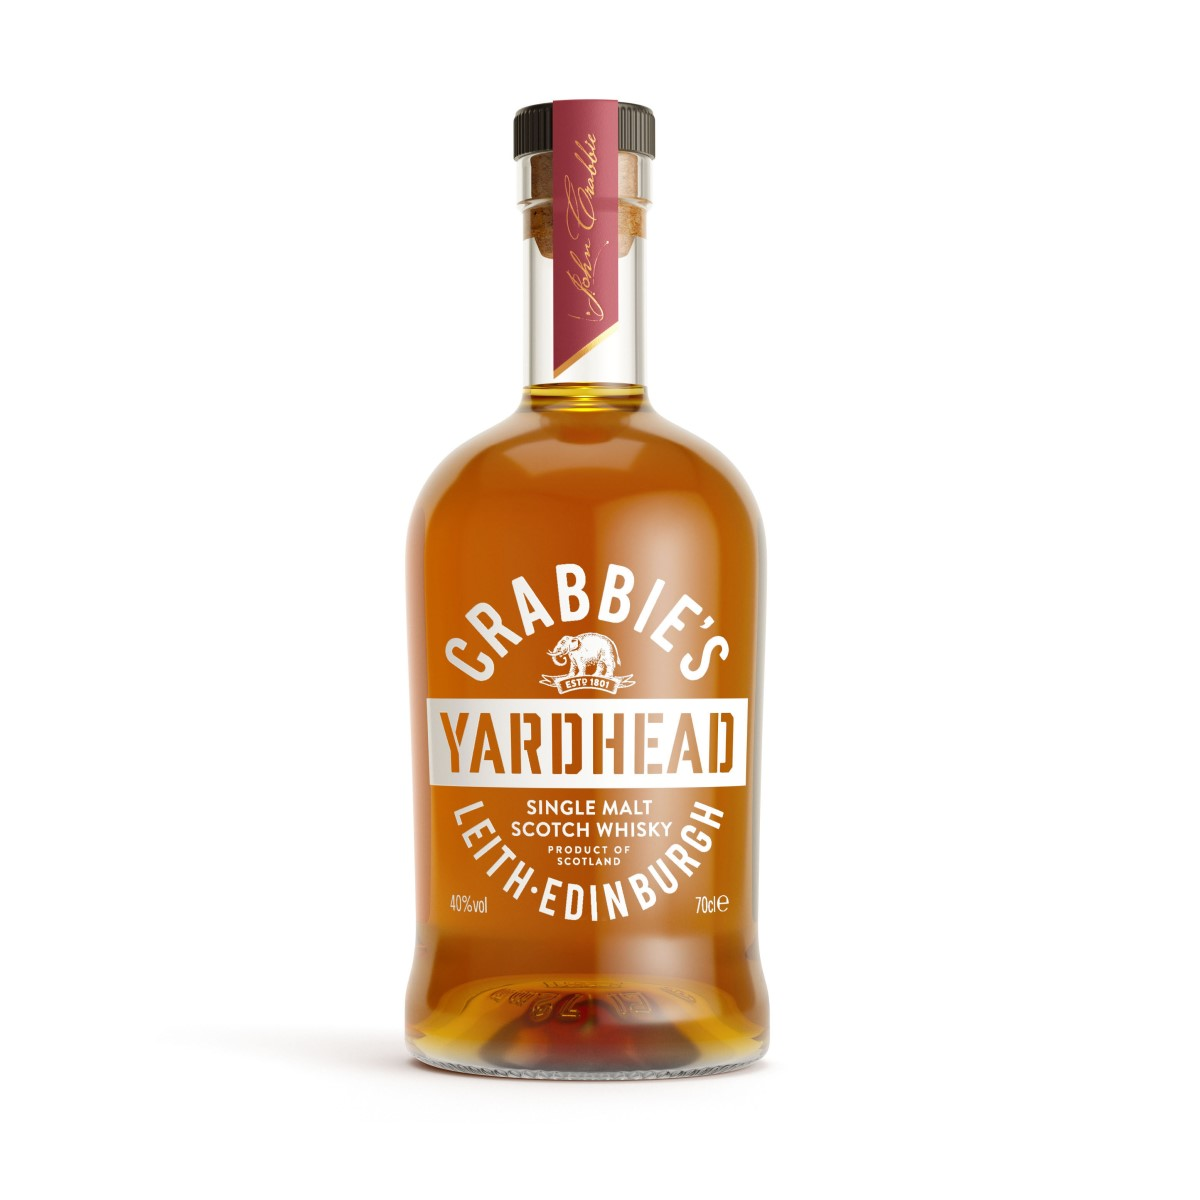 Crabbie Yardhead Single Match Scotch Whisky